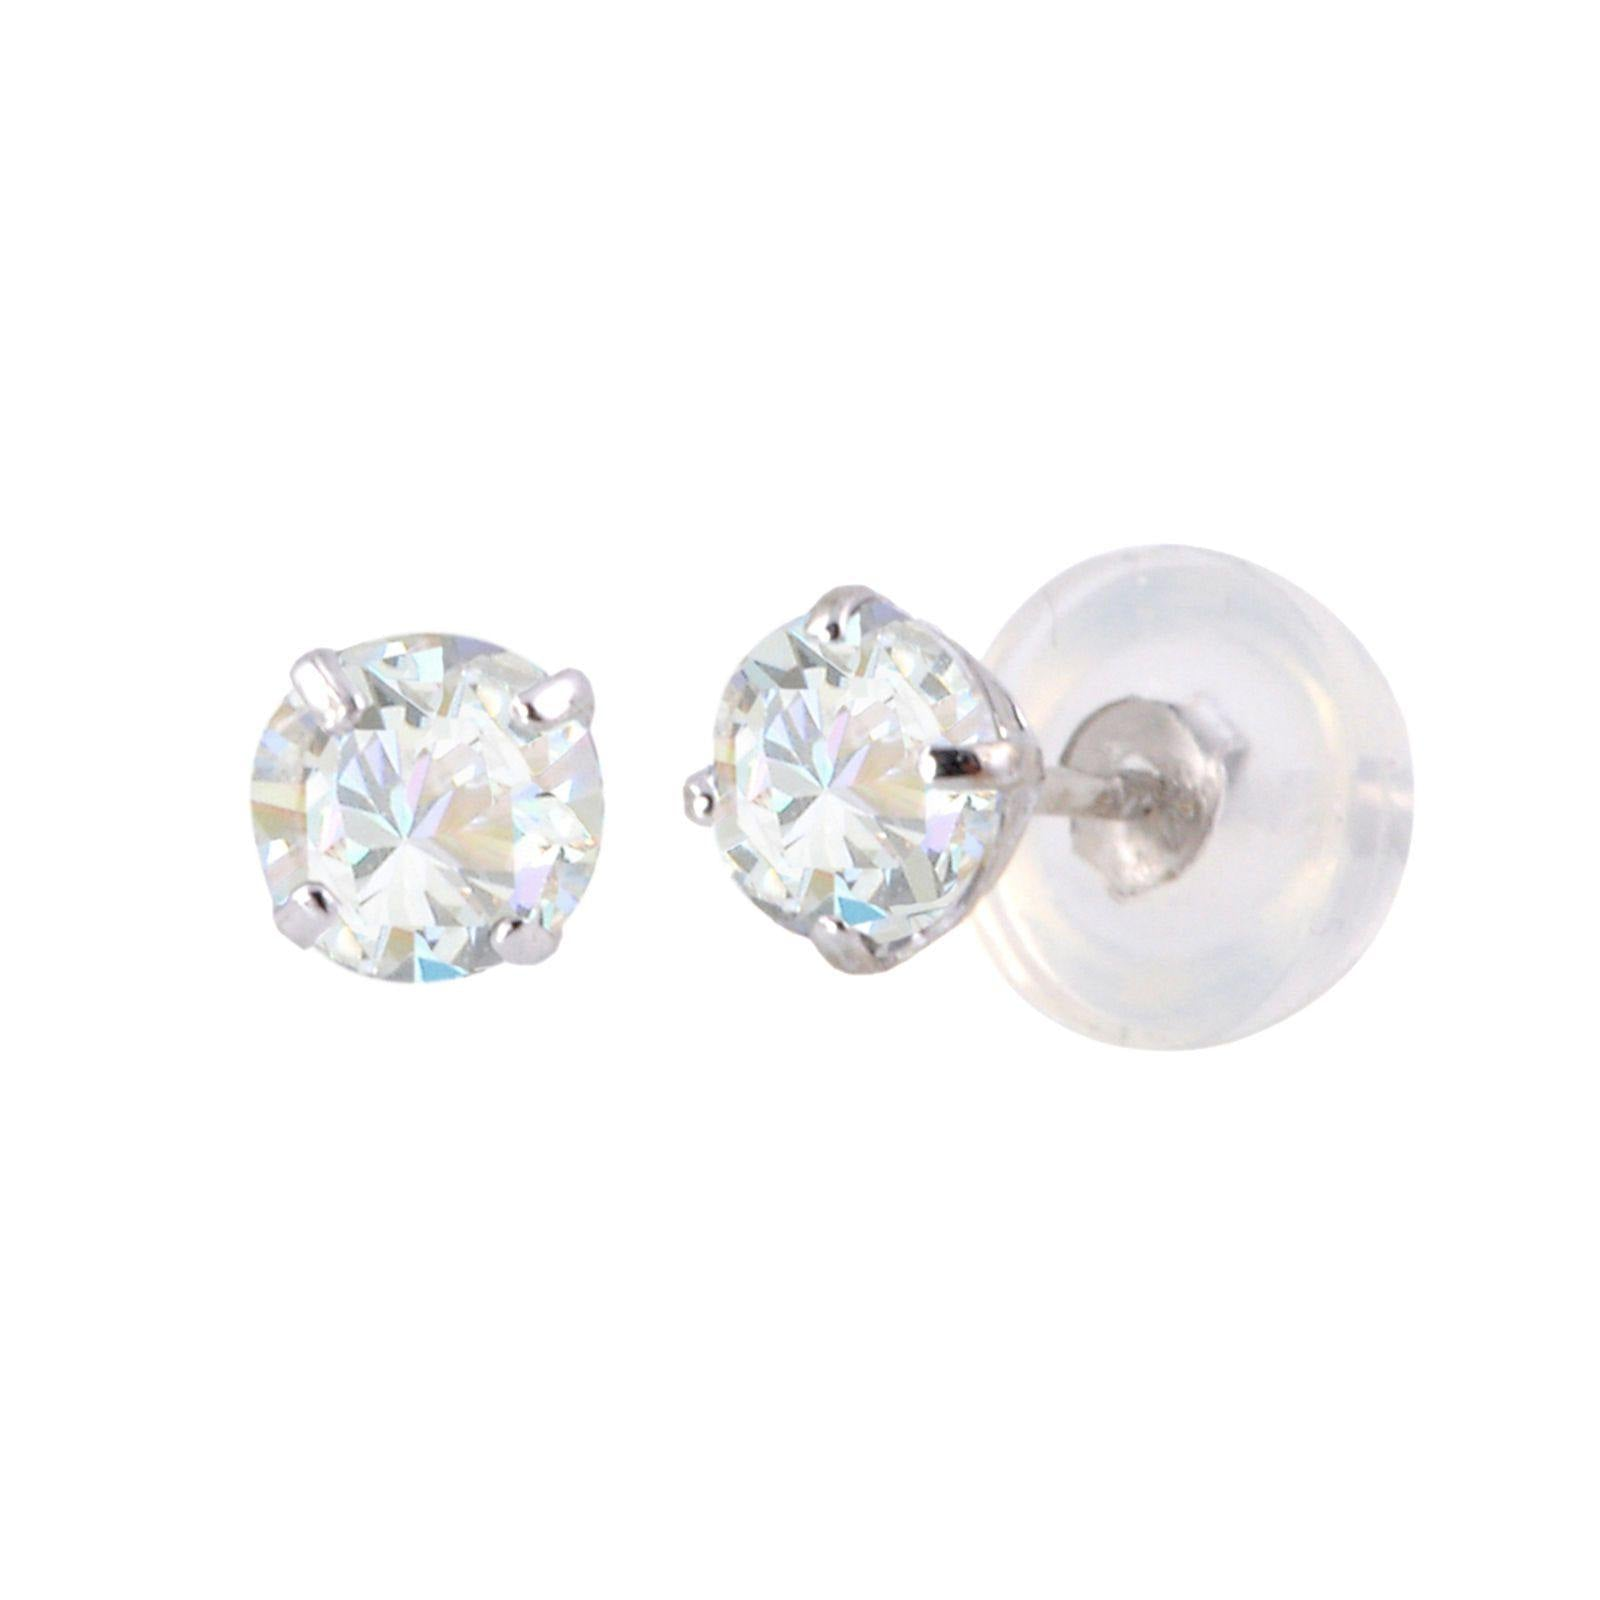 57233dfb4 14k White Gold Clear CZ Round Basket Cubic Zirconia Stud Earrings Silicone  Backs